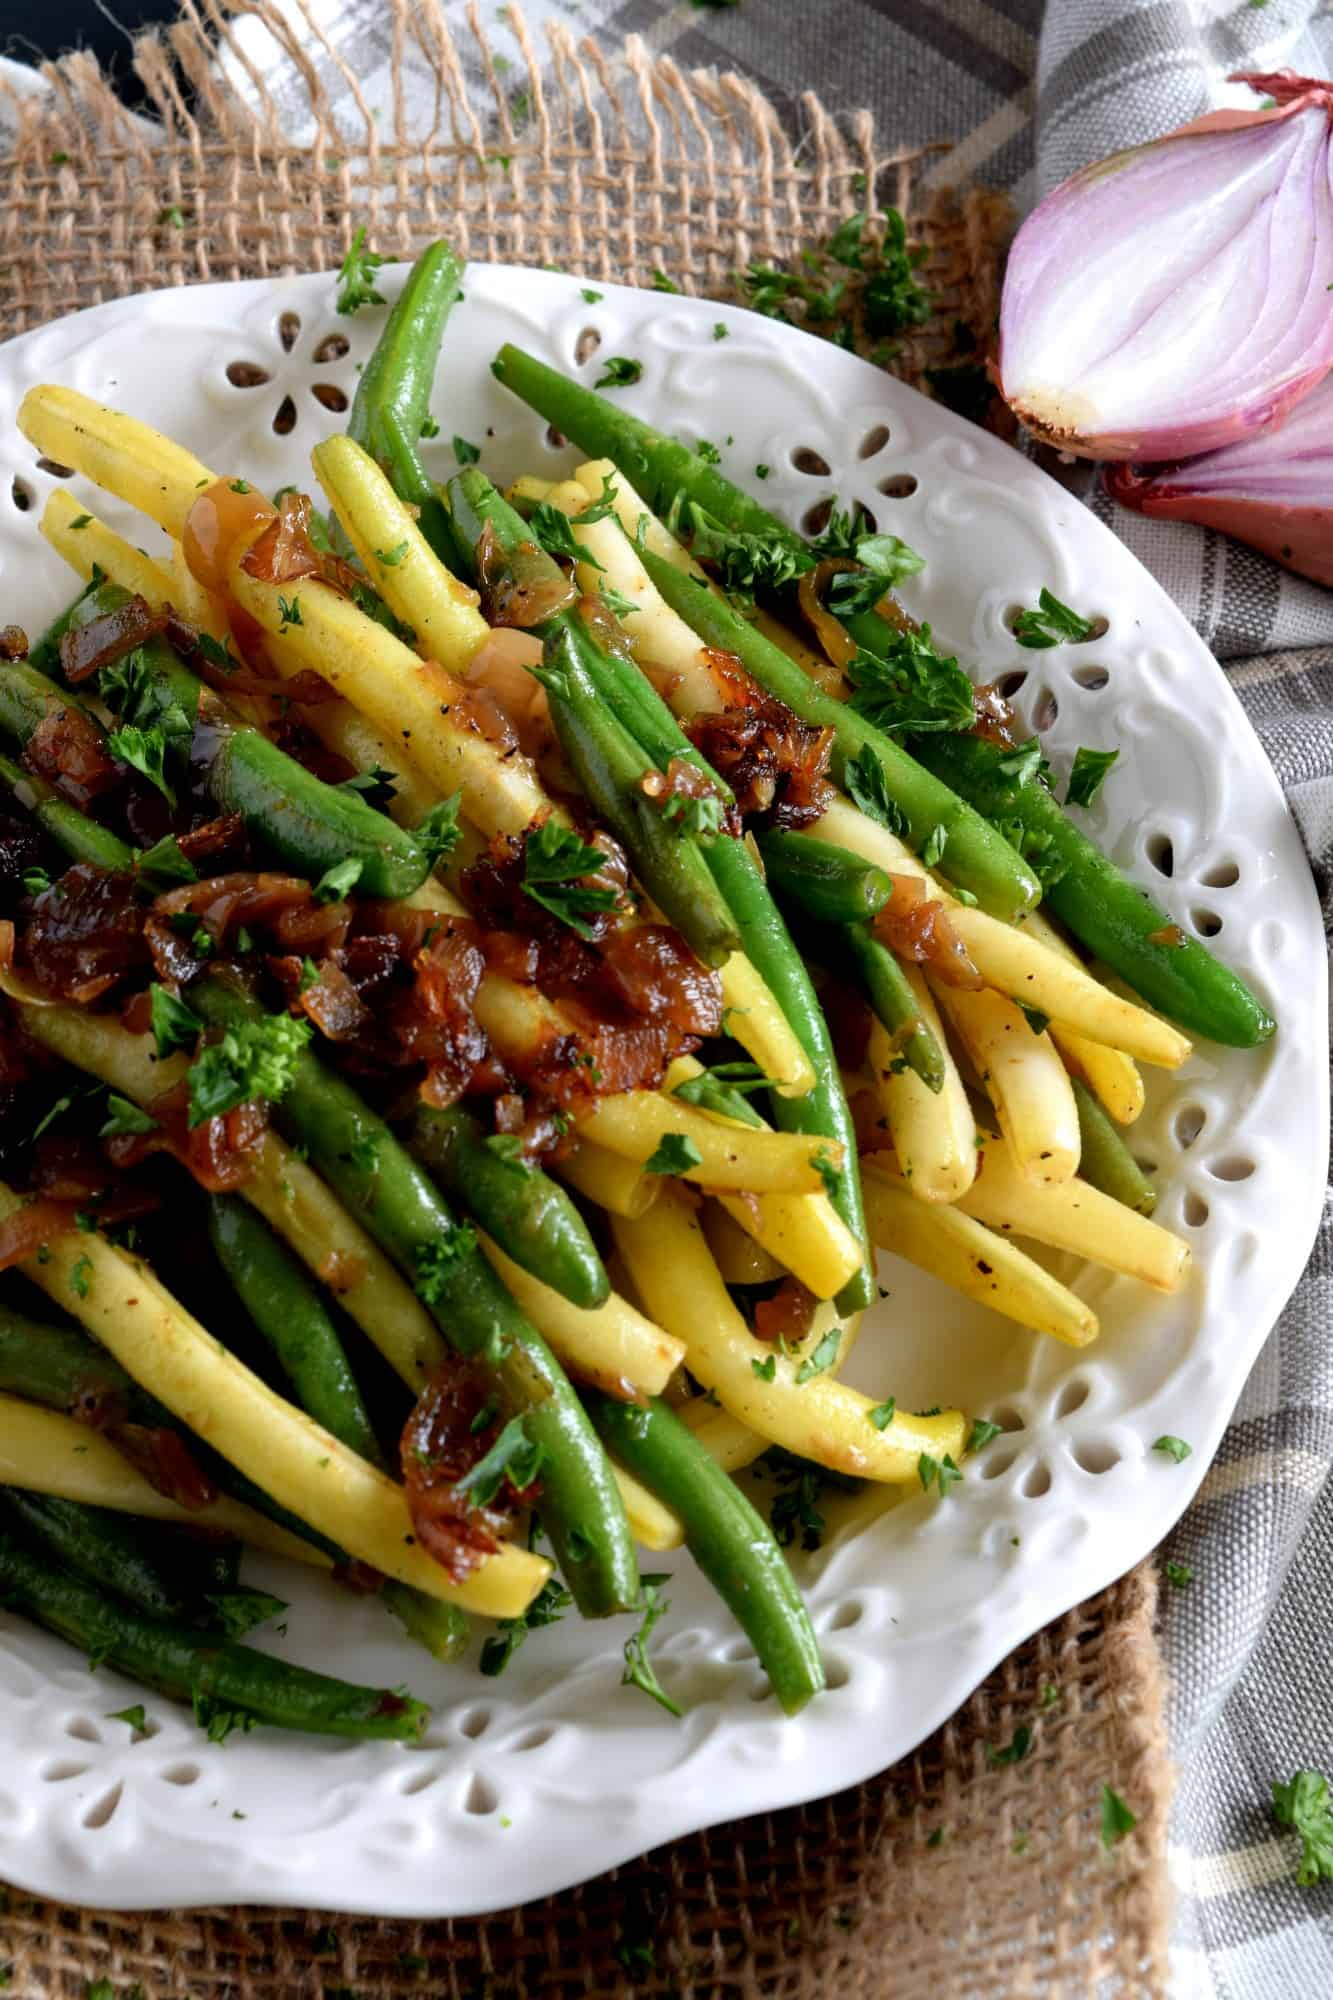 Green Beans Tossed With Shallots and Sesame Green Beans Tossed With Shallots and Sesame new foto